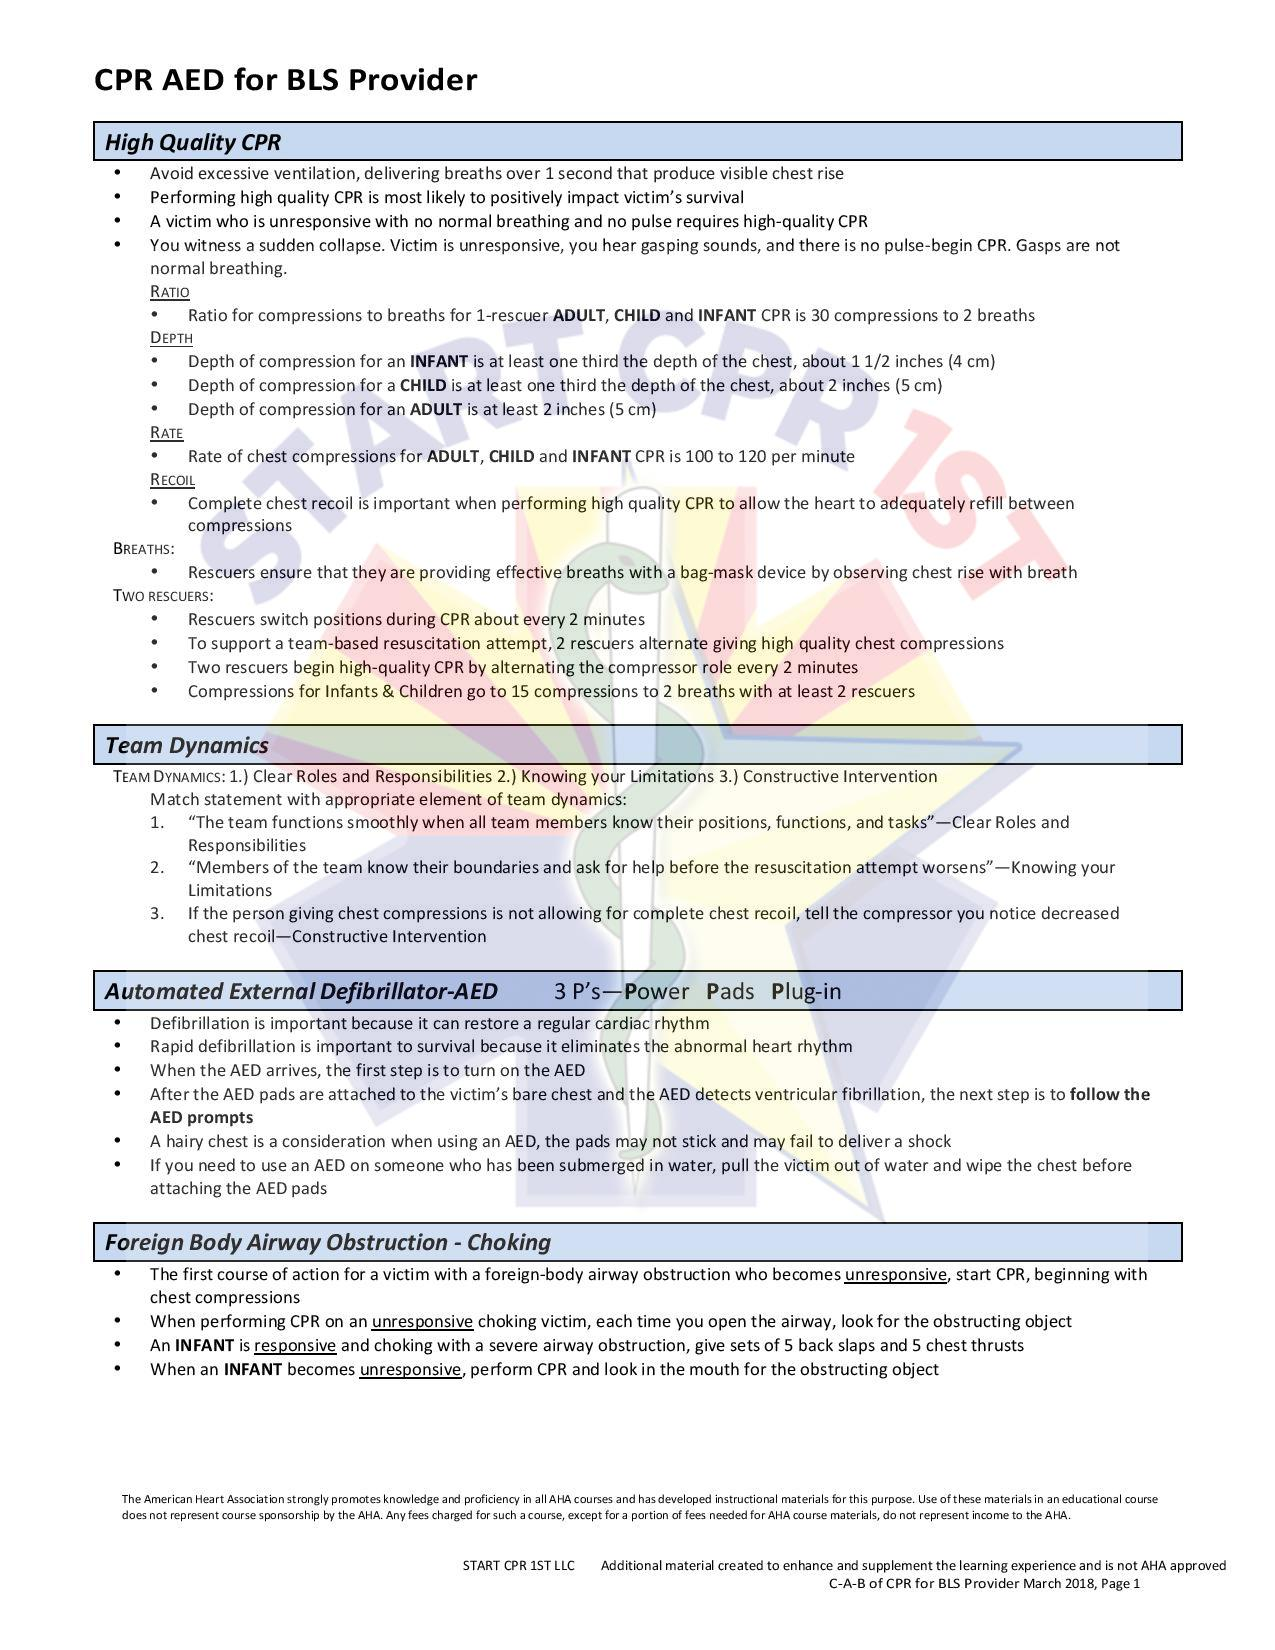 cab-bls-provider-study-guide-2016-1-page-001-1-.jpg